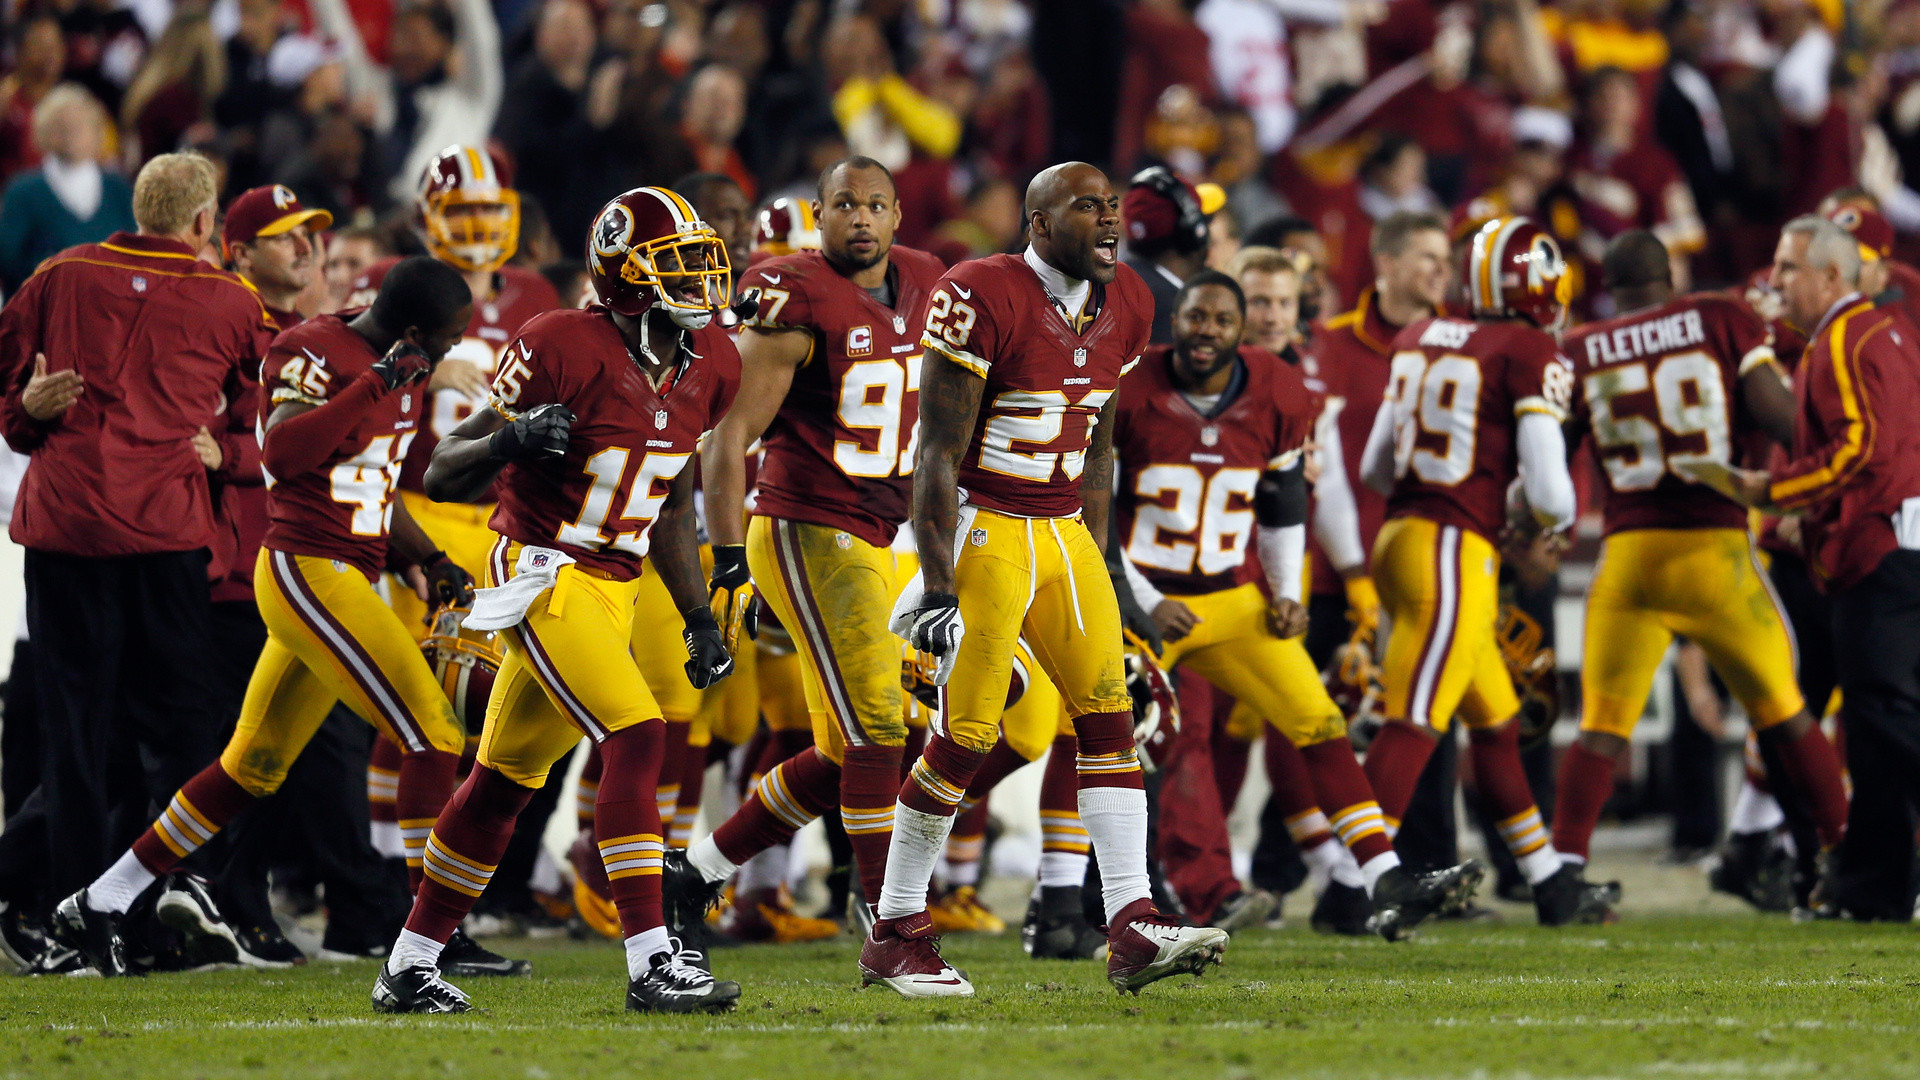 1920x1080 Washington Redskins Nfl, Sports, Nfl, American Football, Washington Redskins  American Football,